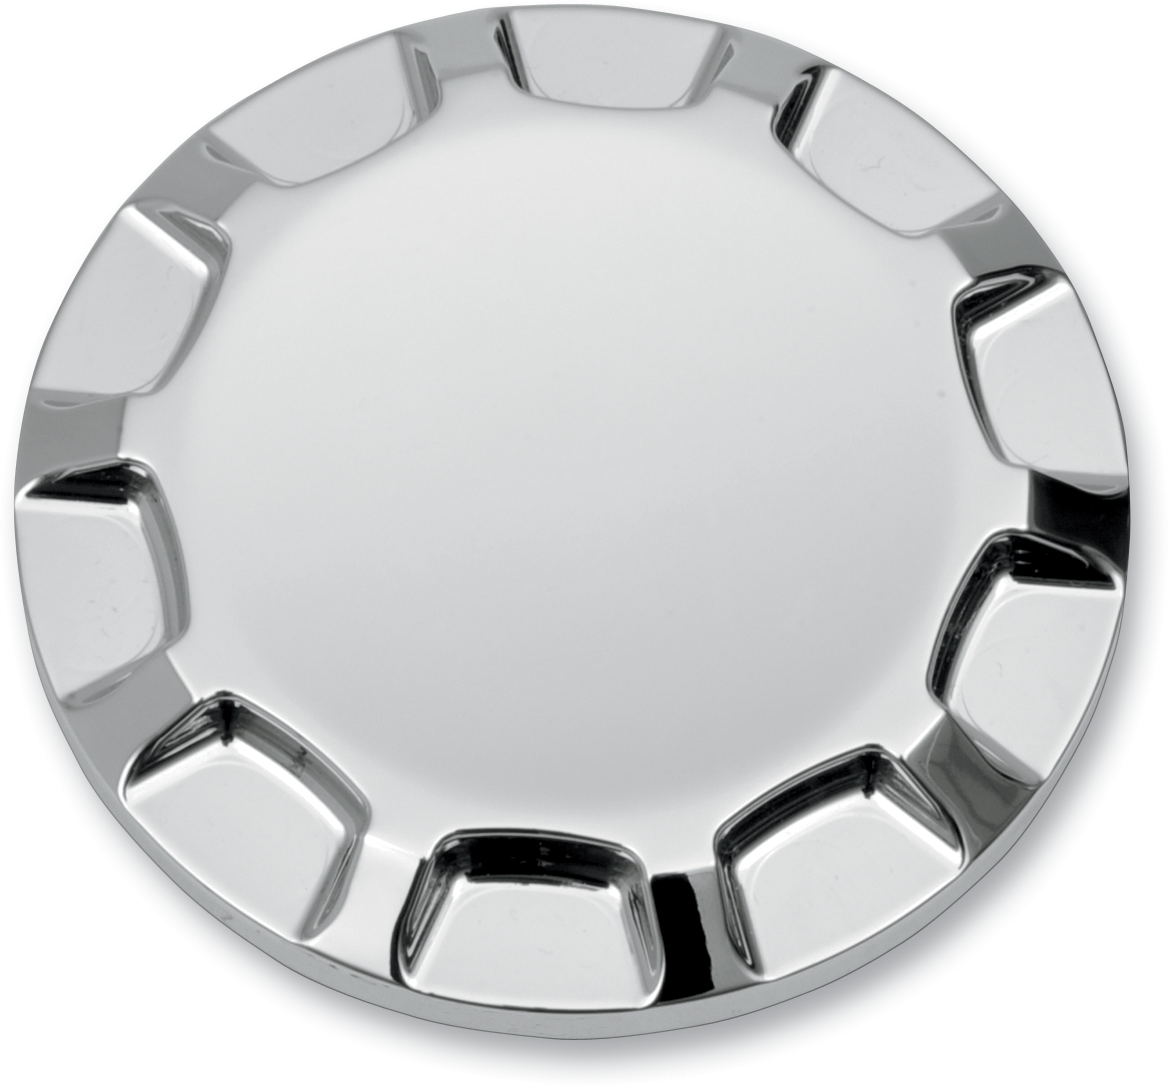 Drag Specialties Chrome Dummy Gas Cap 96-15 Harley Dyna Touring Softail FXST FLD